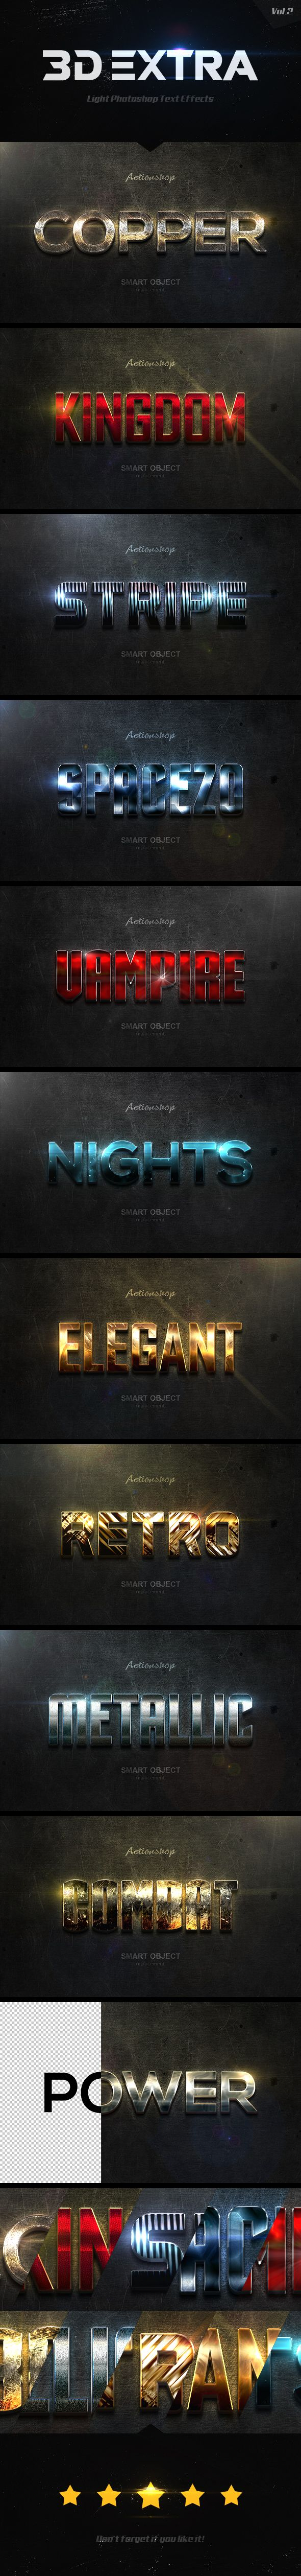 New 3D Extra Light Text Effects Vol.2 - Text Effects #Styles Download here:  https://graphicriver.net/item/new-3d-extra-light-text-effects-vol2/19737536?ref=alena994